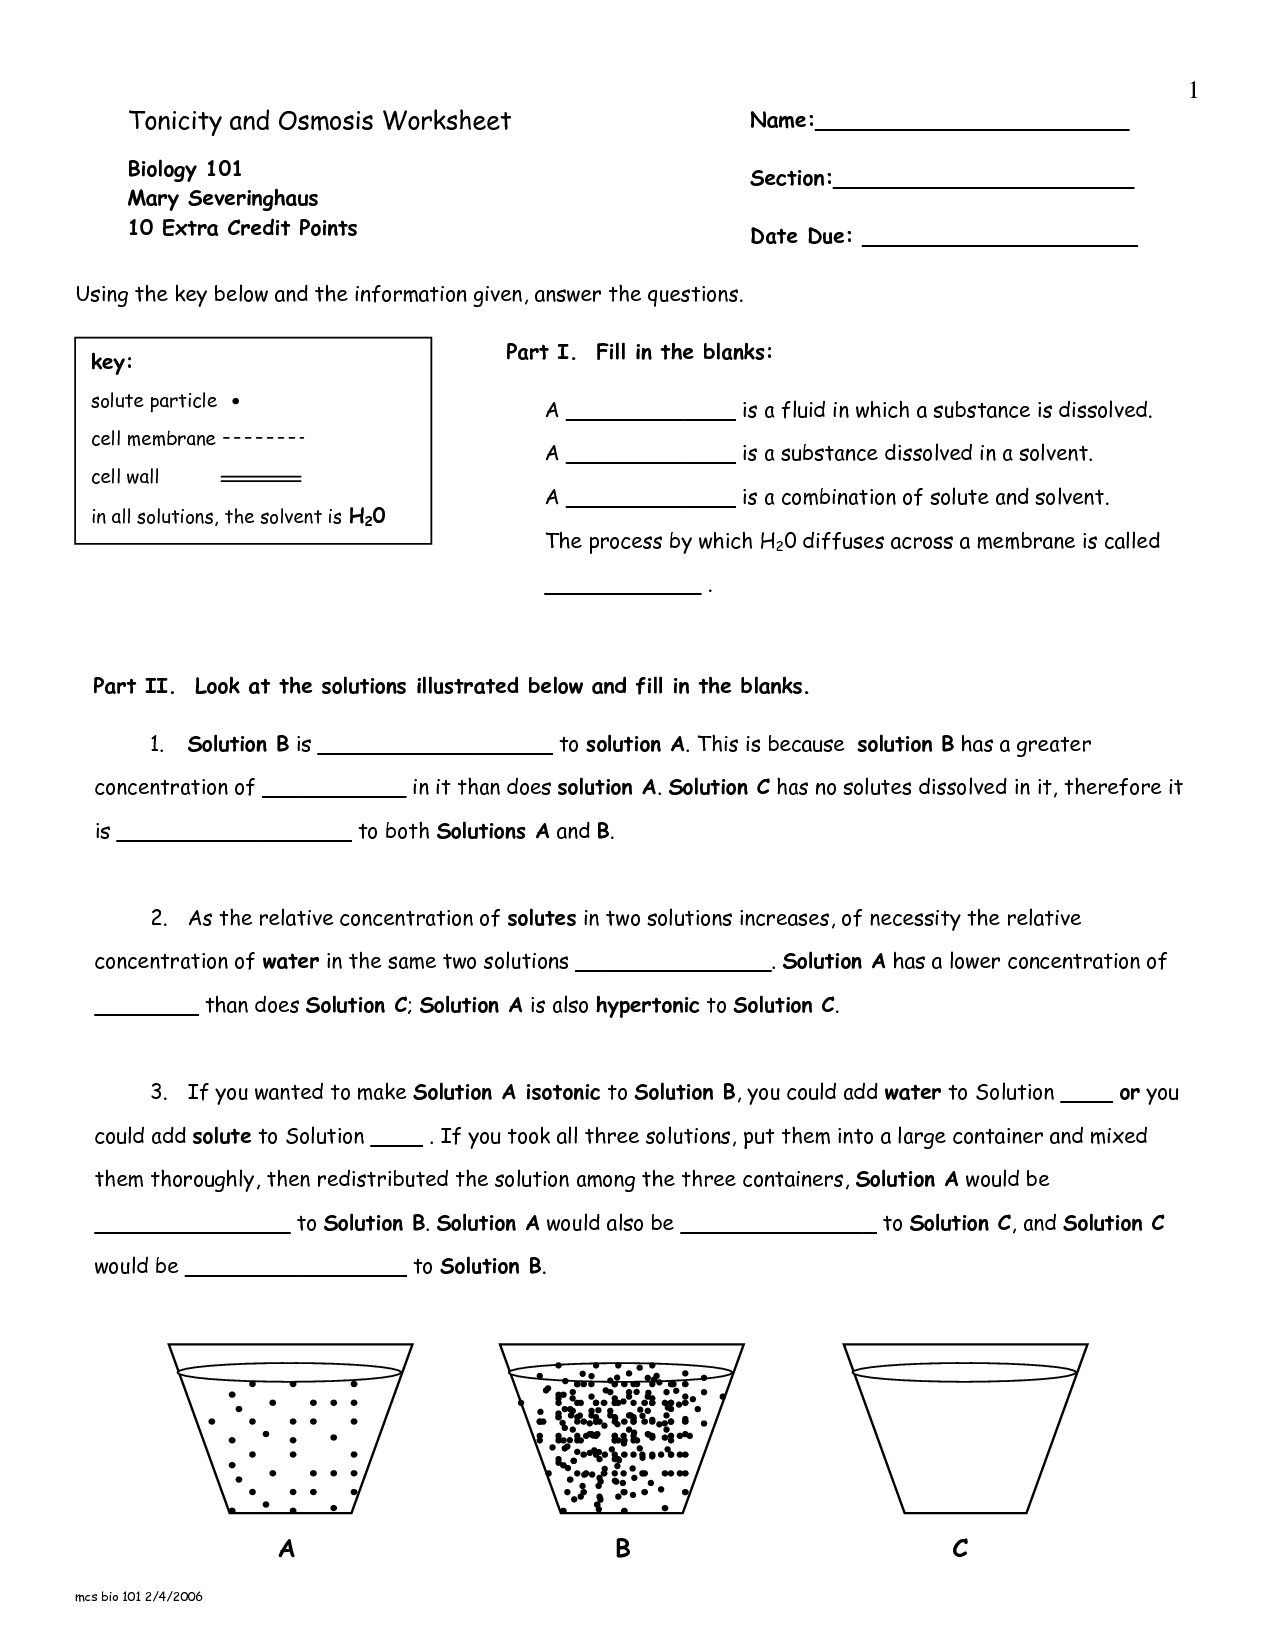 worksheet Tonicity And Osmosis Worksheet worksheets cell membrane and tonicity worksheet christopherjoel dimensions published in osmosis answers